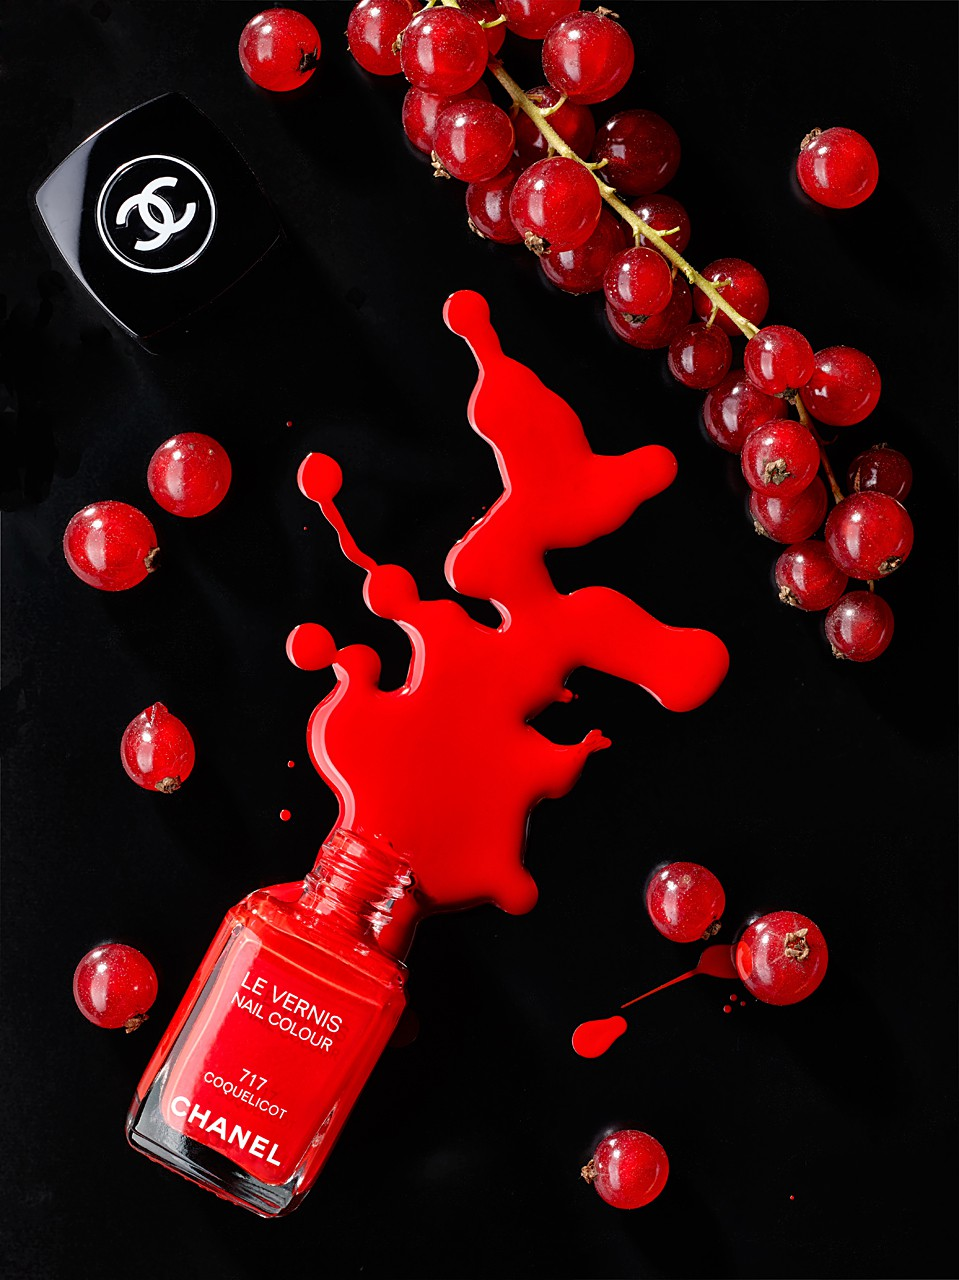 Sabine-Scheer-liquid-splash-chanel-coquelicot-717